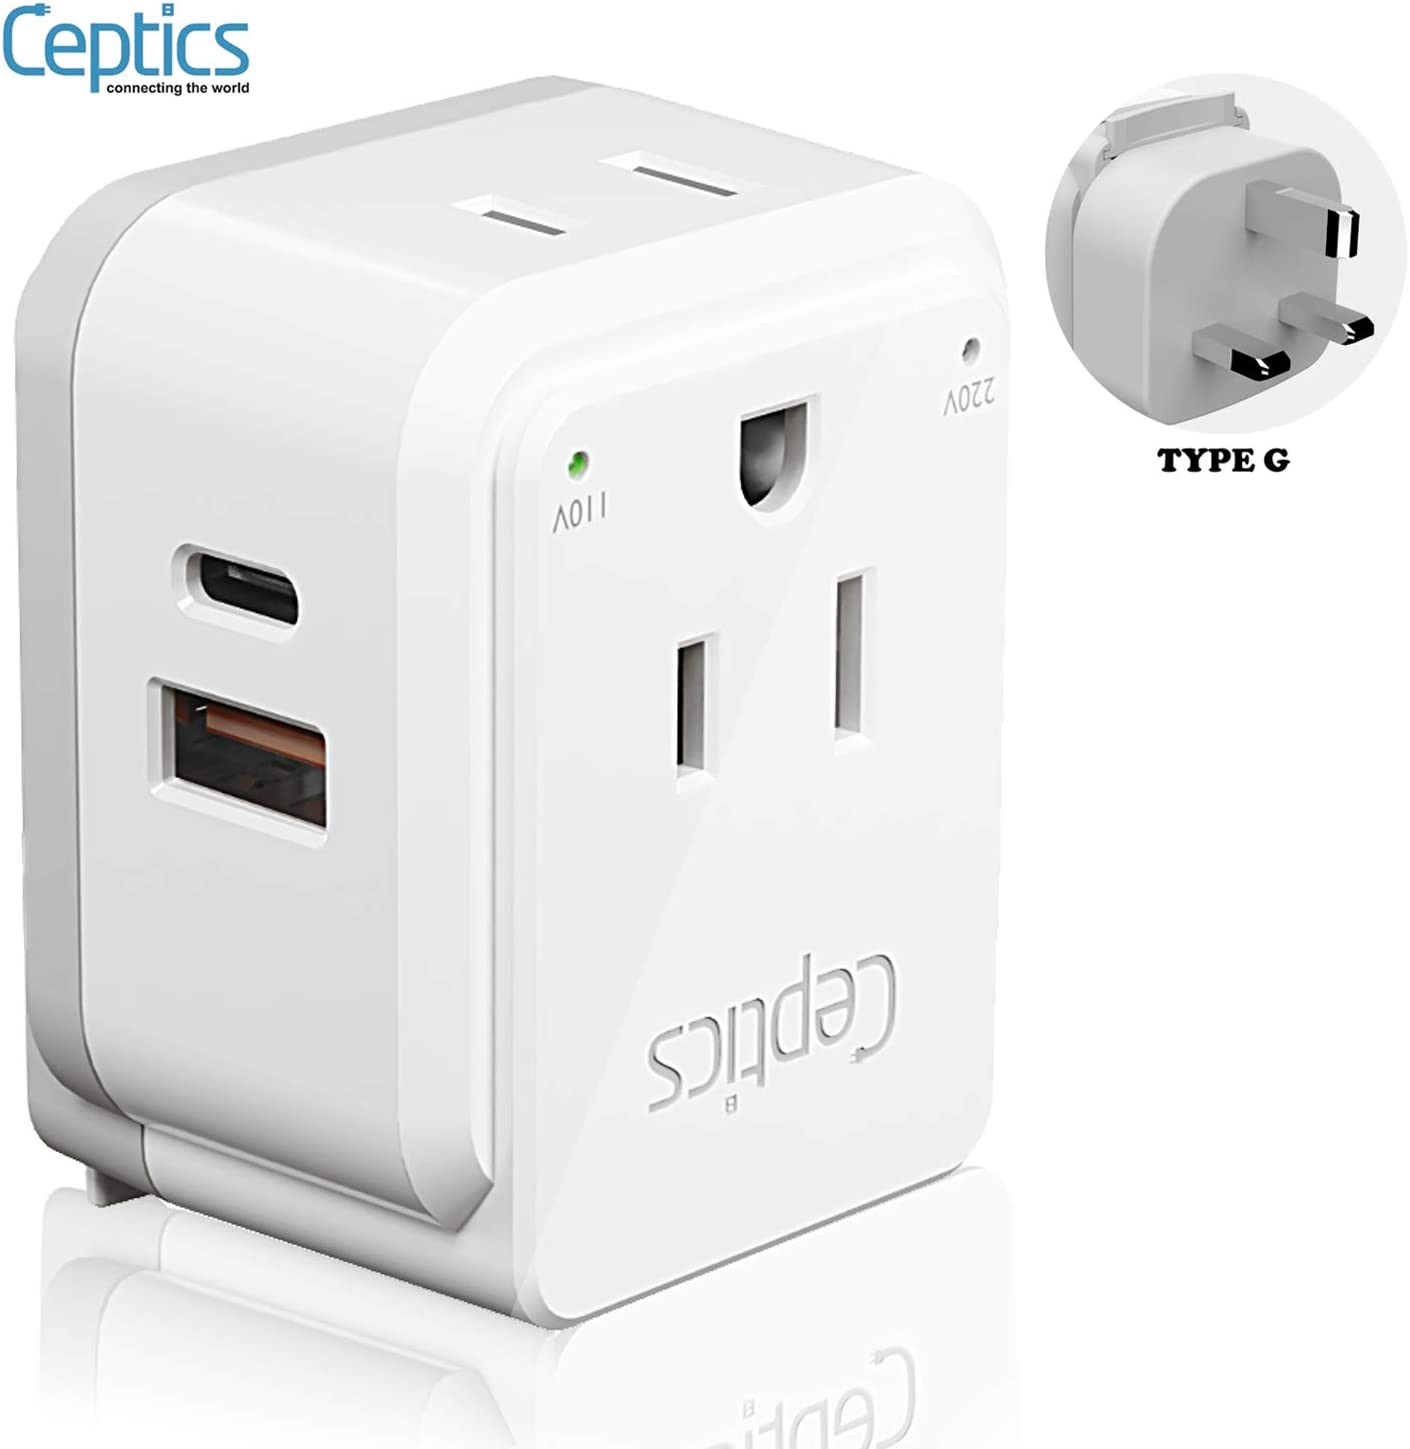 UK, Ireland Power Adapter Travel by Ceptics, Safe Dual USB & USB-C 3.1A - 2 USA Socket - Compact & Powerful - Use in Hong Kong, England, Dubai, Saudi Arabia - Includes Type G Swadapt Attachments